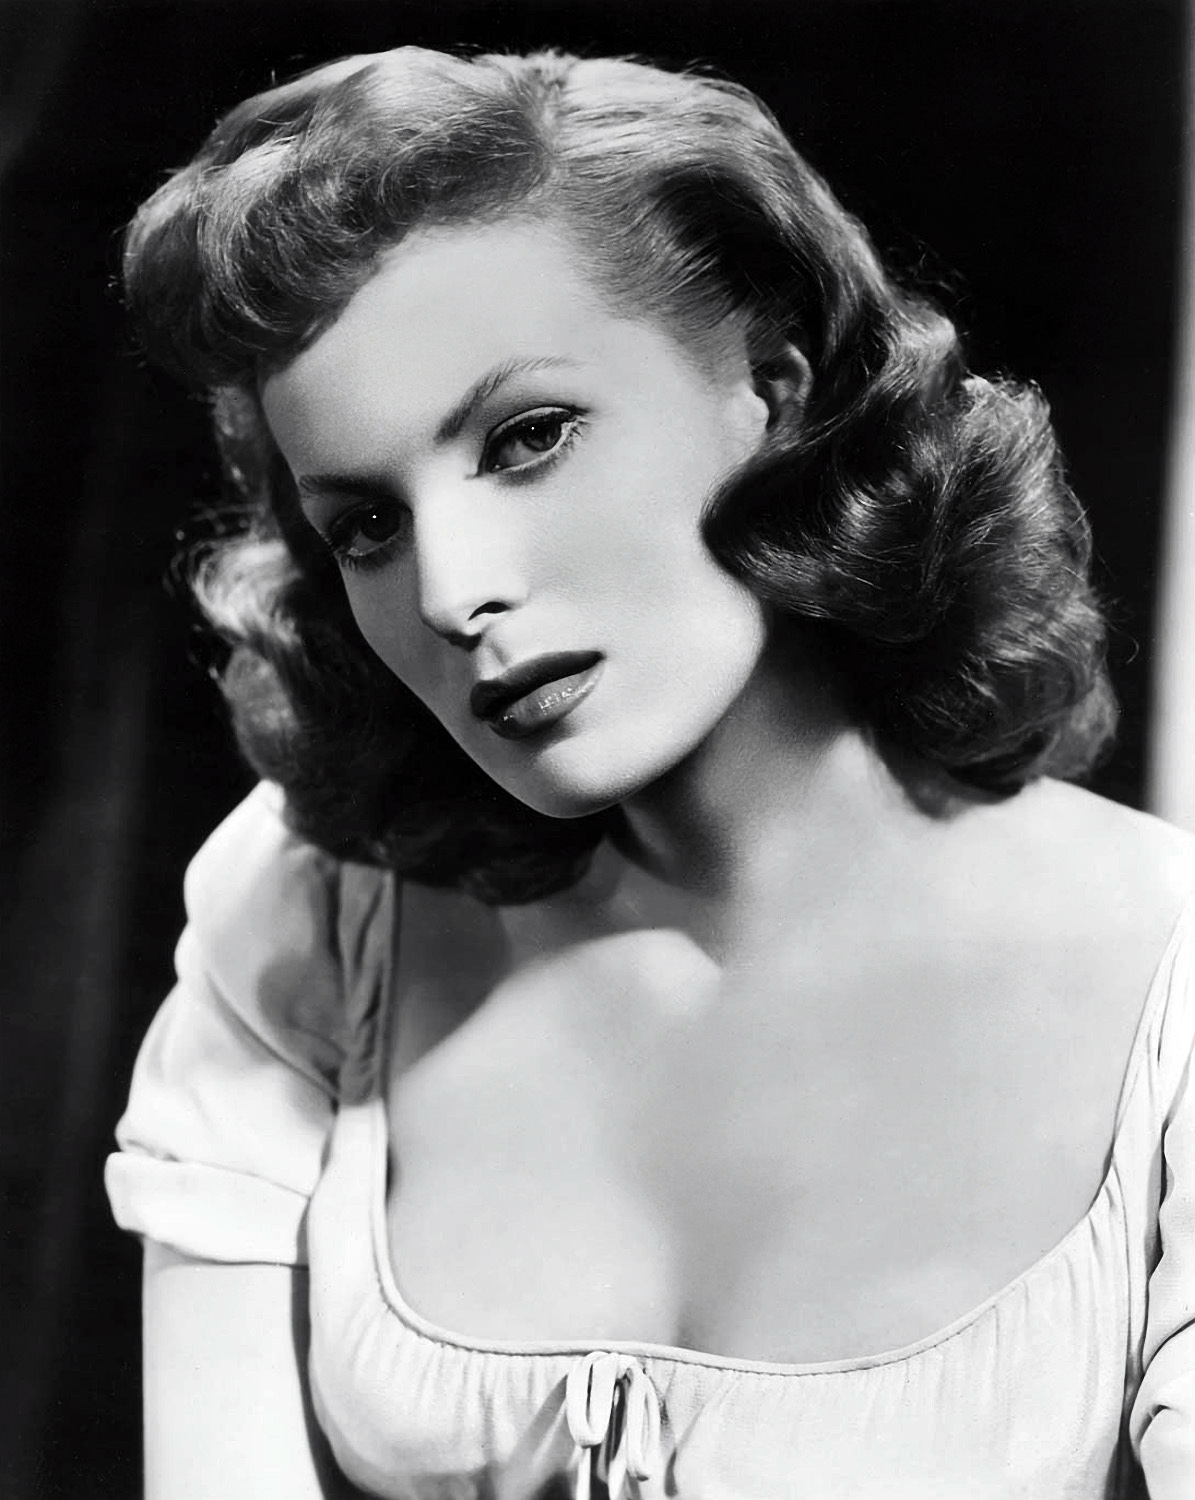 Maureen O'Hara nudes (51 photo), Ass, Hot, Twitter, braless 2019